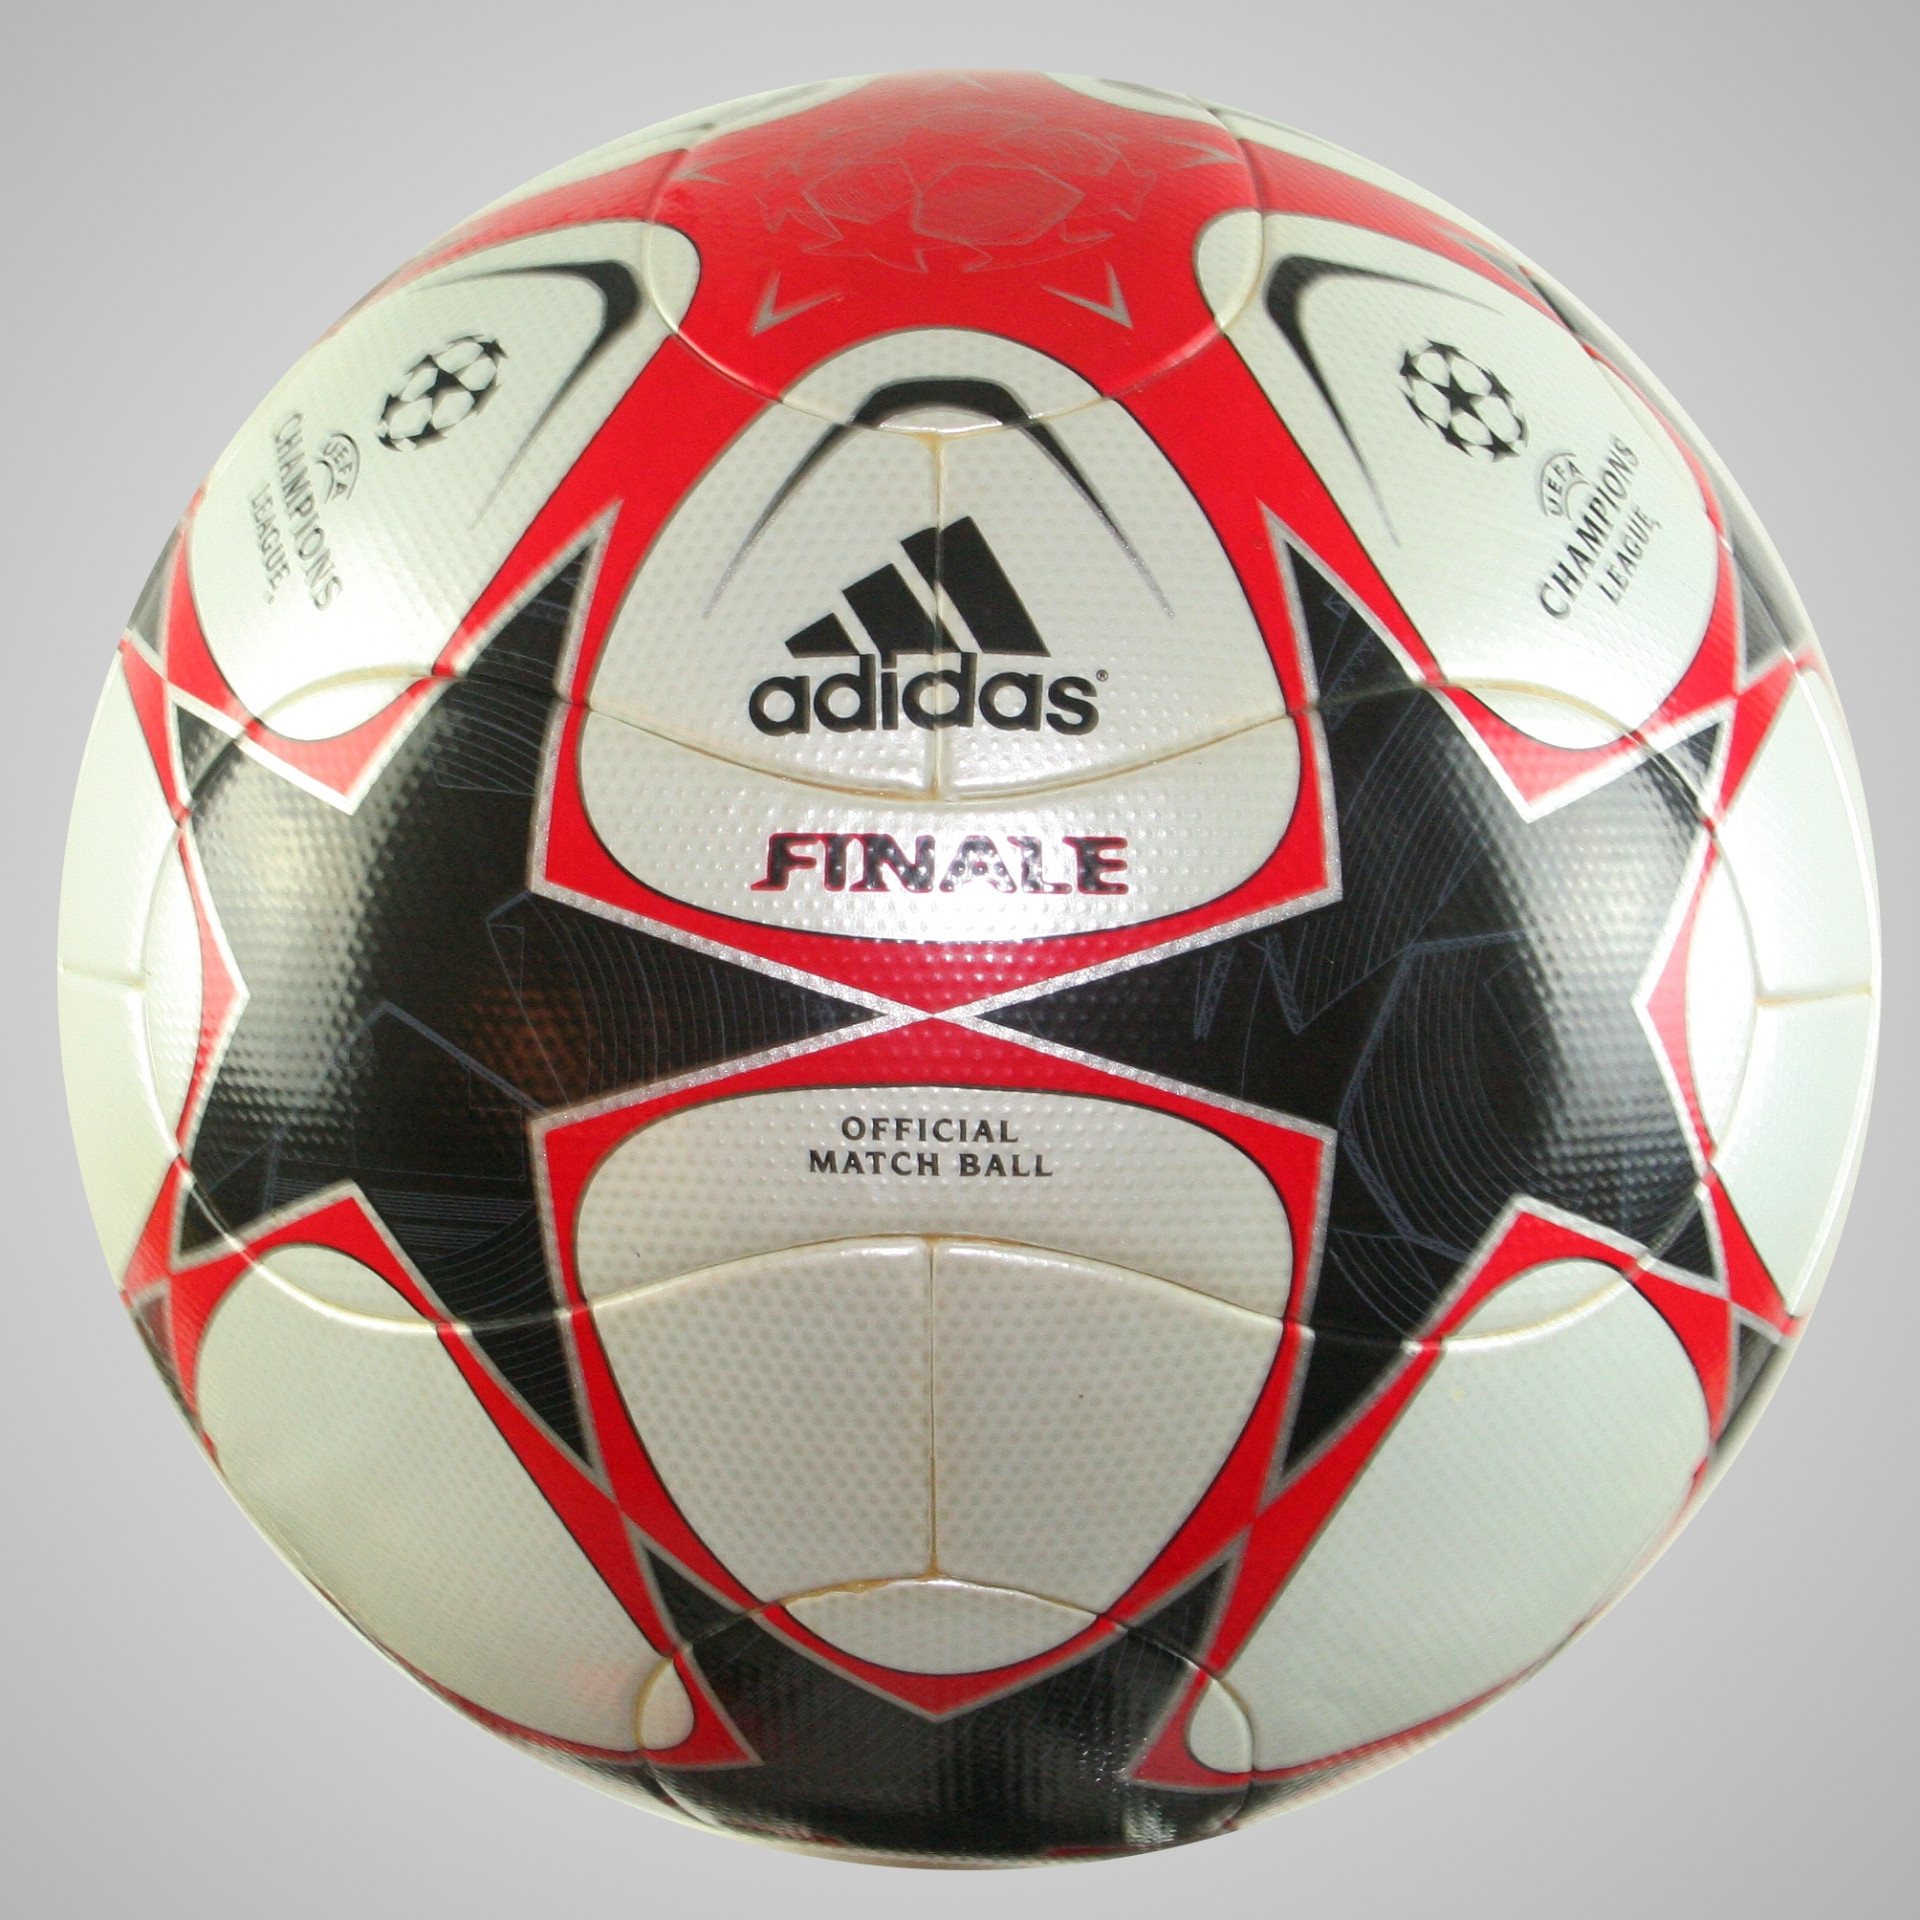 Adidas Finale 2008 Champions League Official Matchball